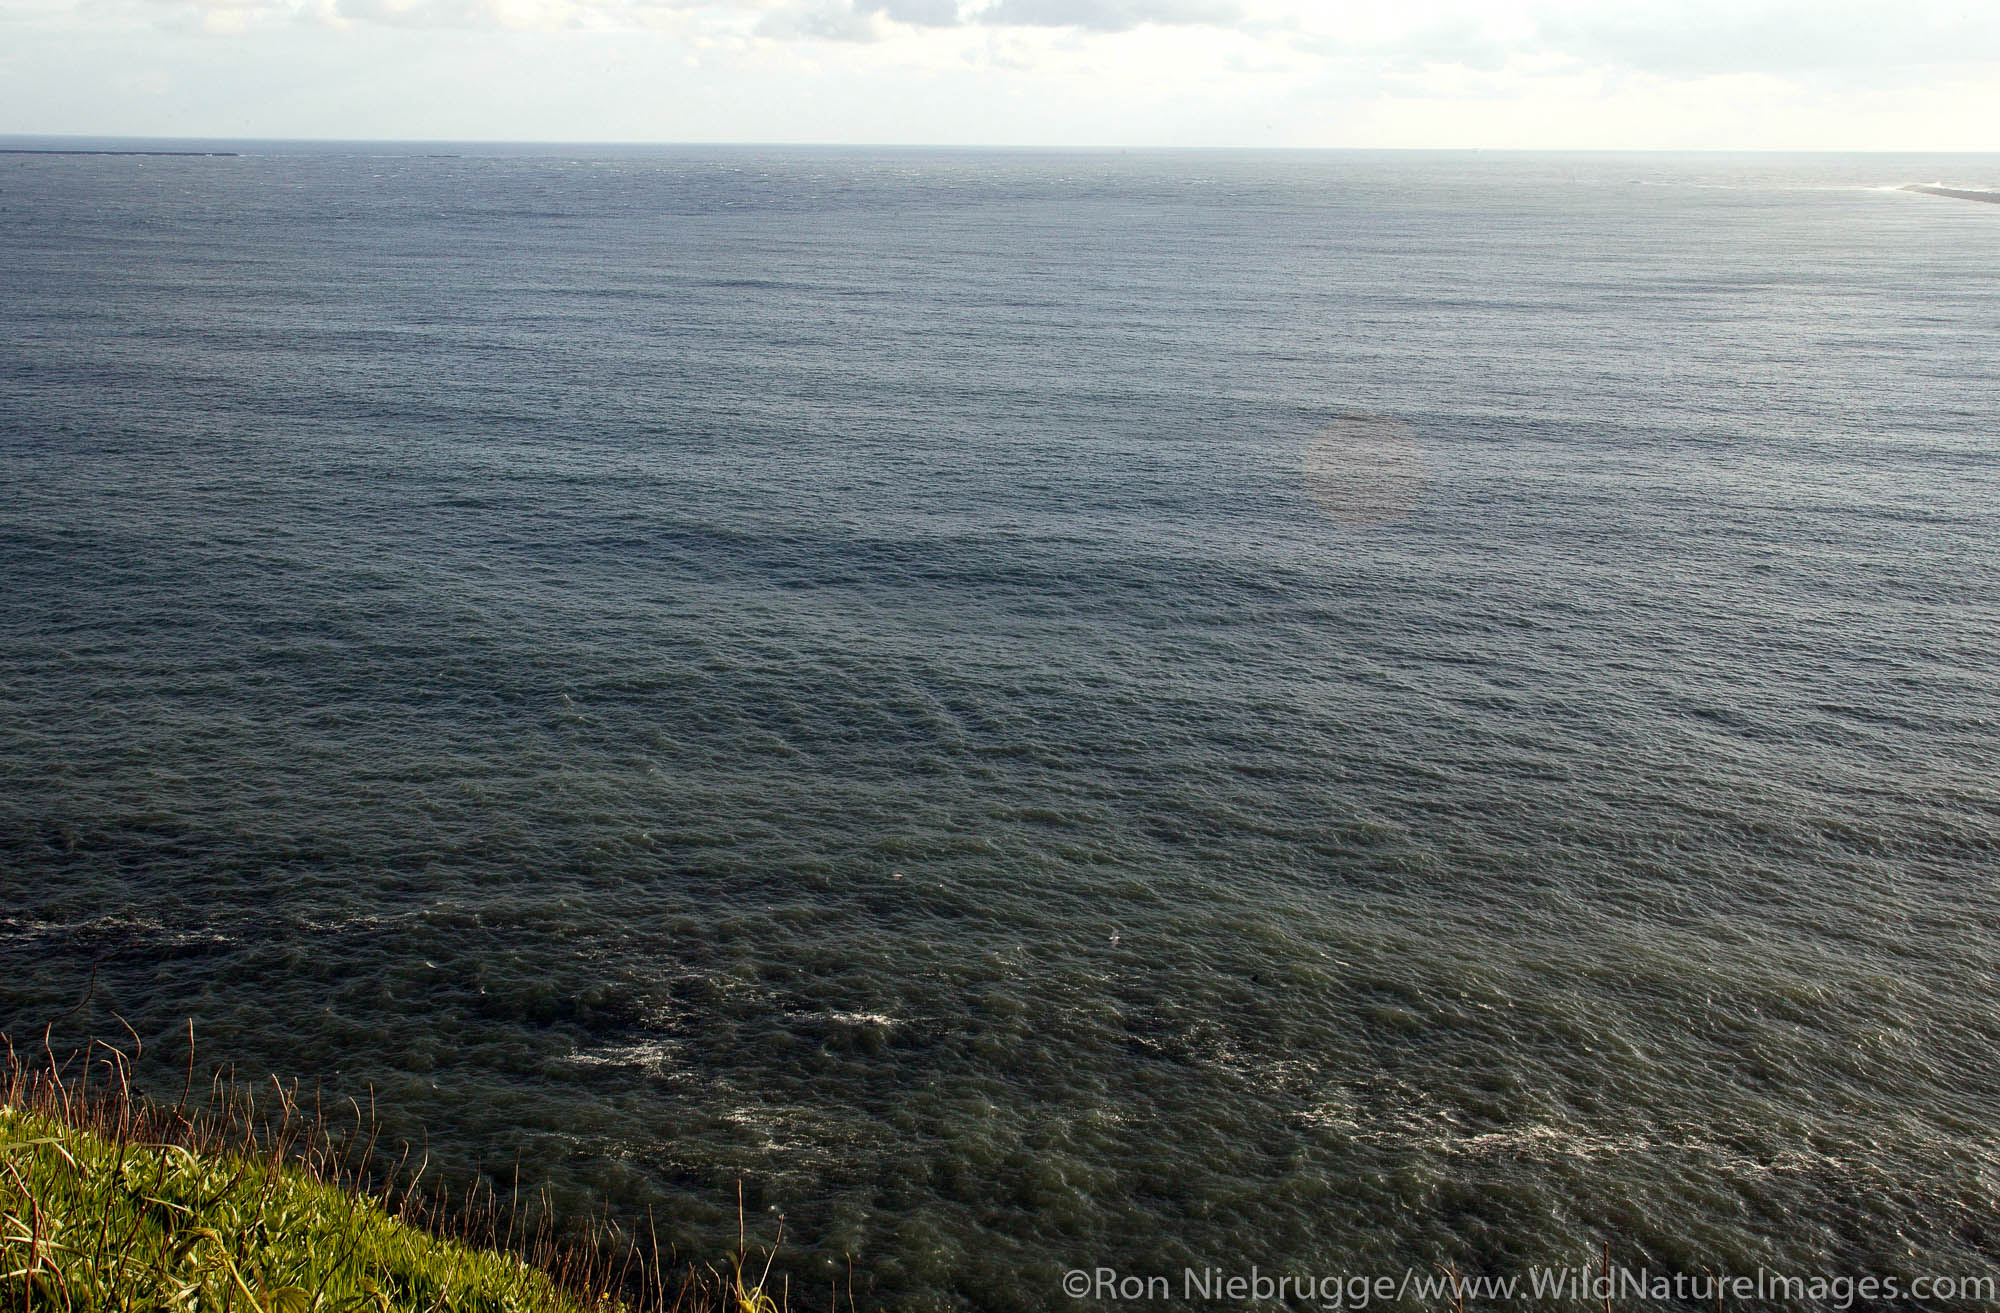 Mouth of the Columbia River from Cape Disappointment State Park.  This was Lewis and Clark's final destination.  Washington